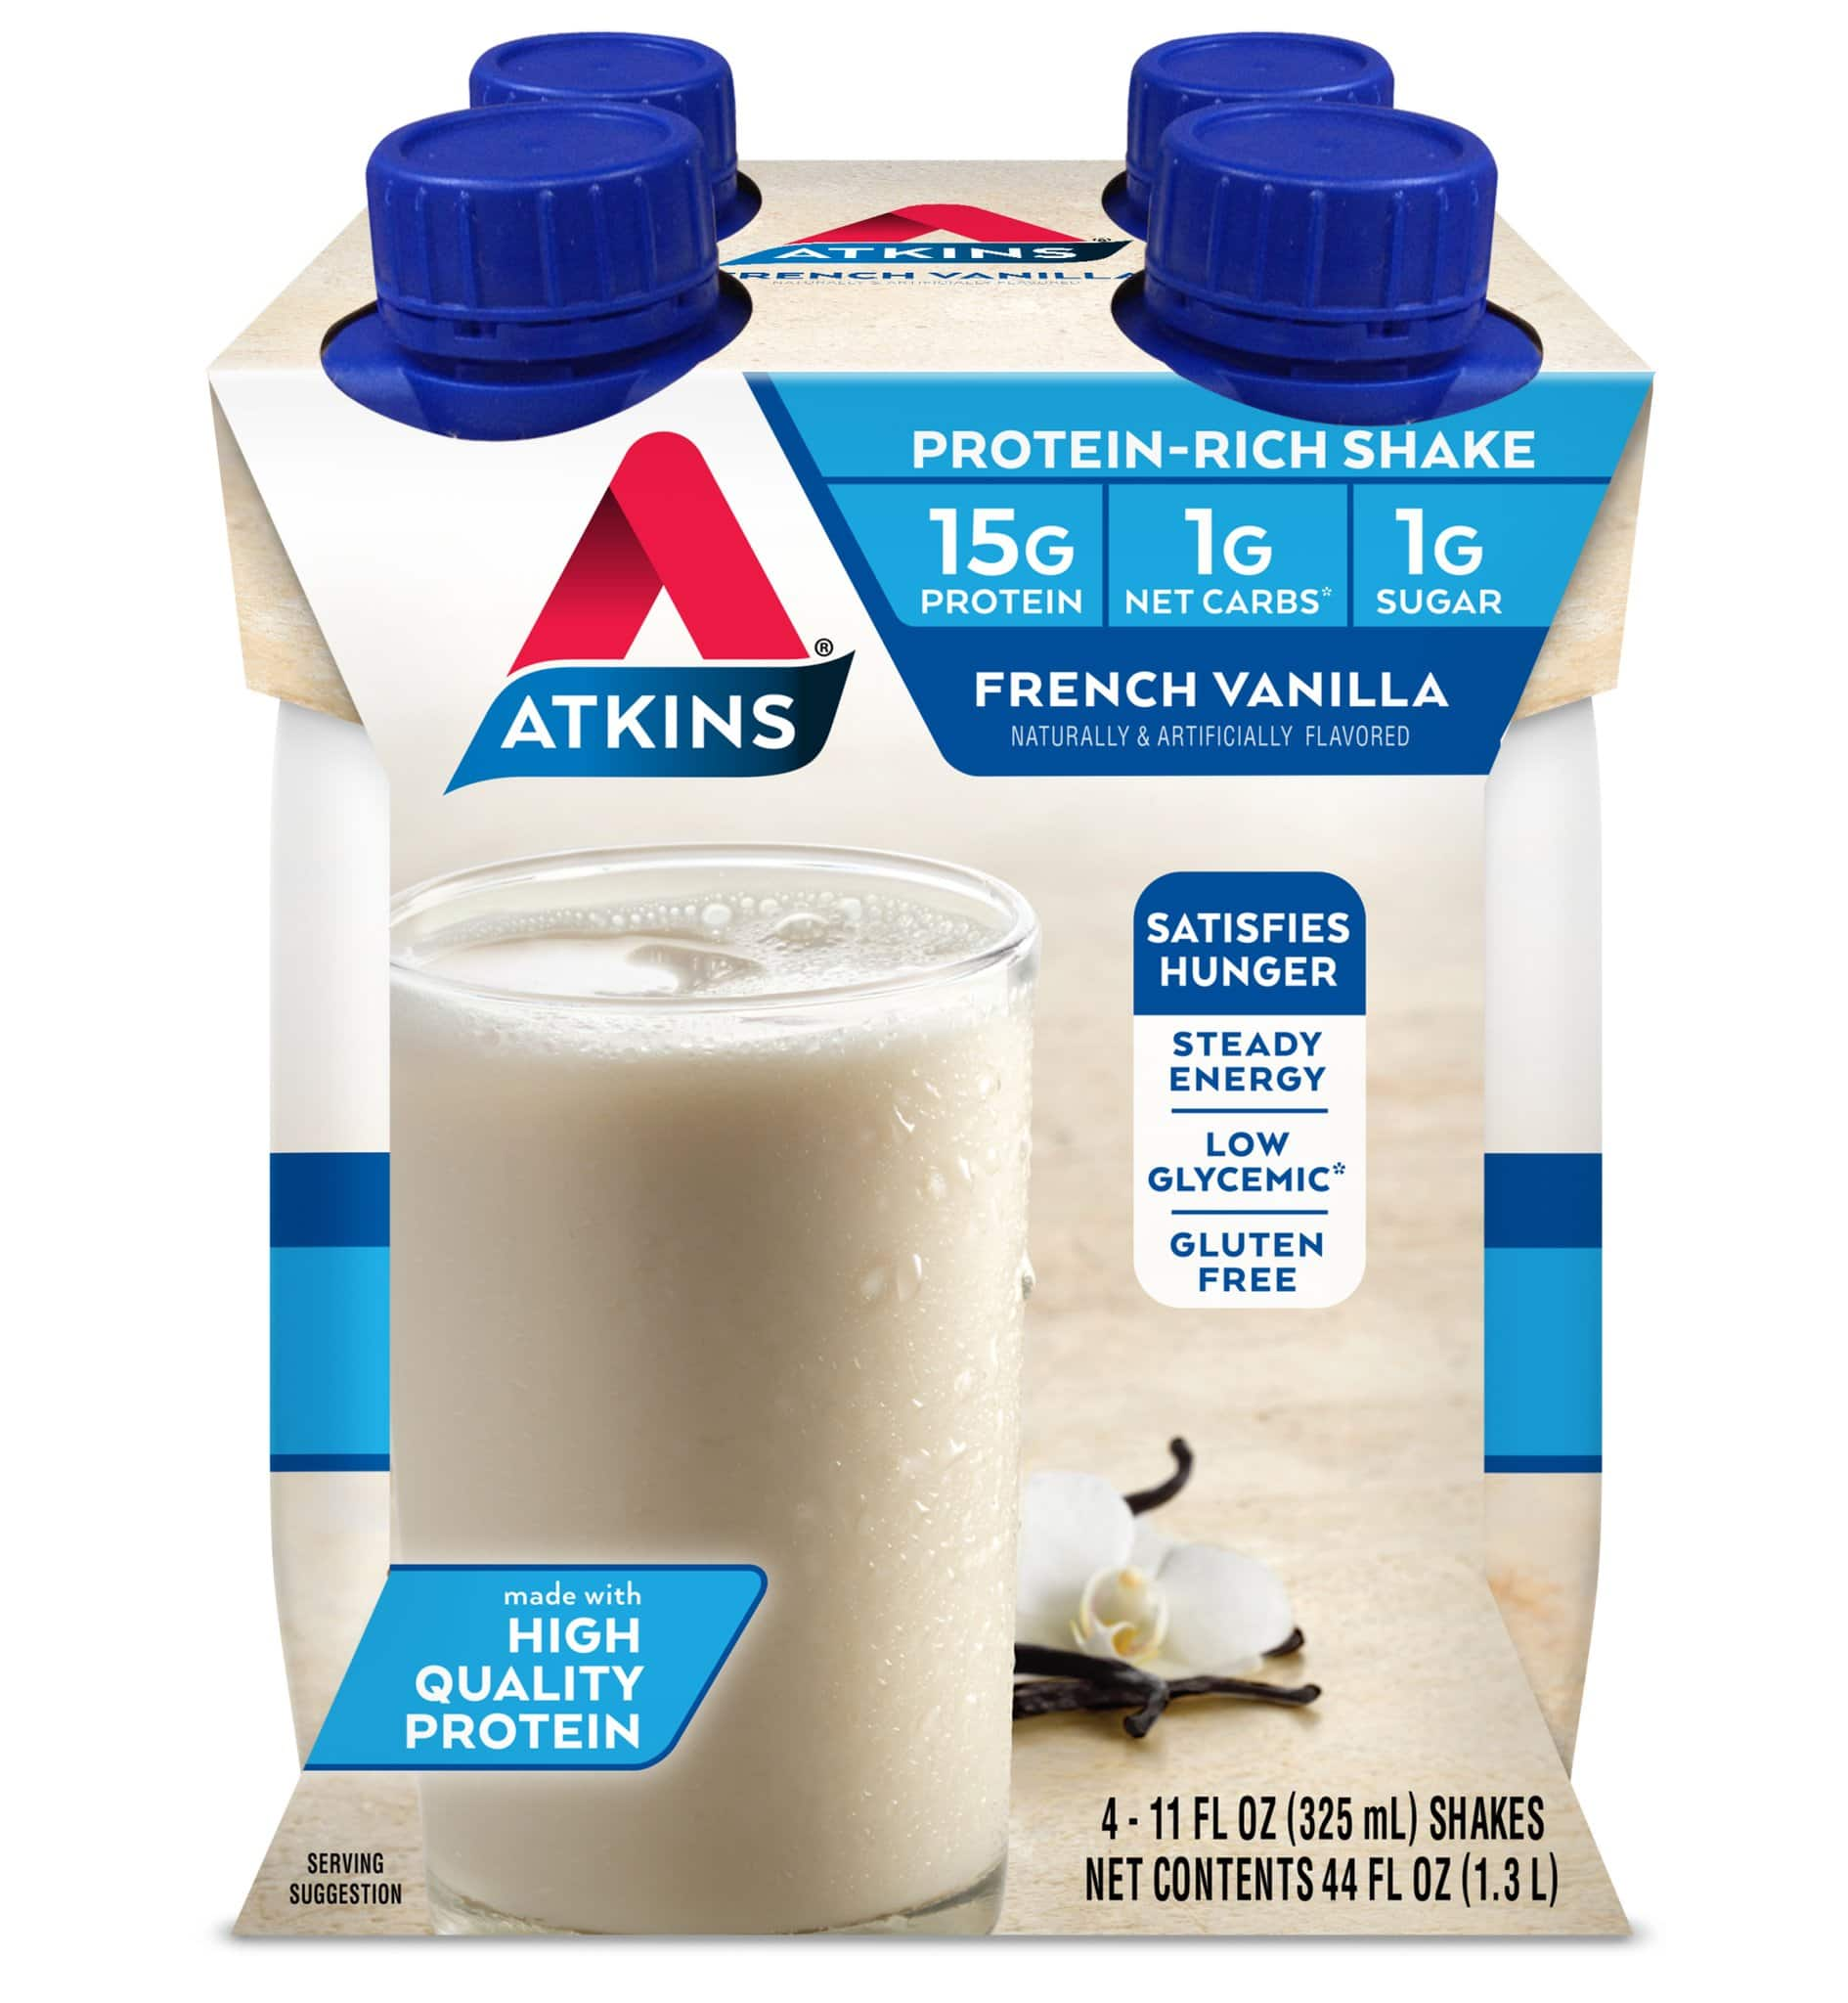 Atkins Shakes, Snack/Meal Bars, 20%-30% off AC + 5%-15% Amazon S&S (limited flavors)